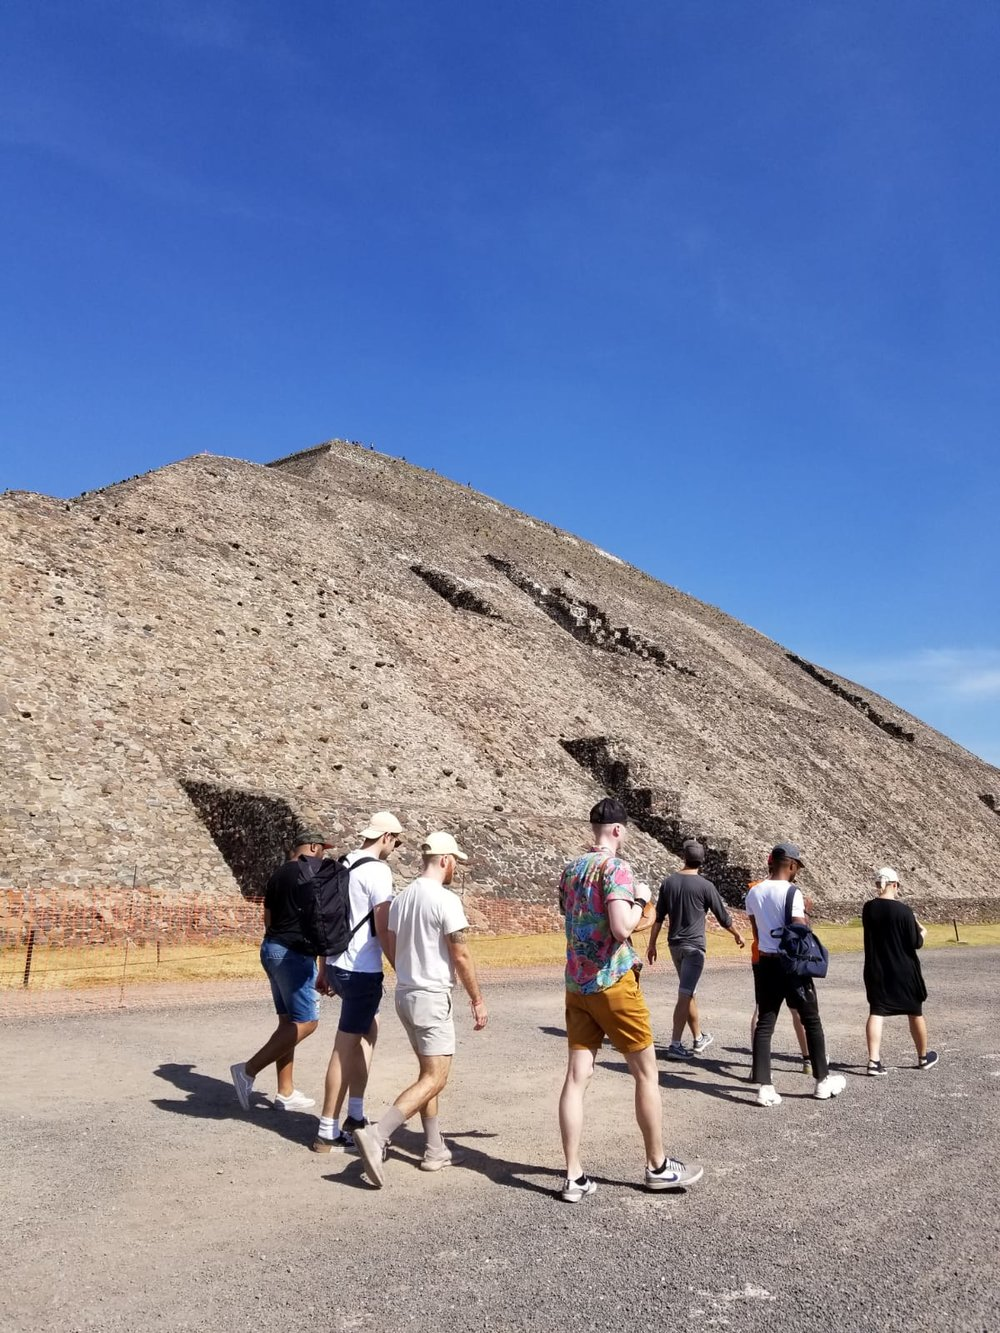 Walking next to the temple of the sun at the Teotihuacan Pyramids.